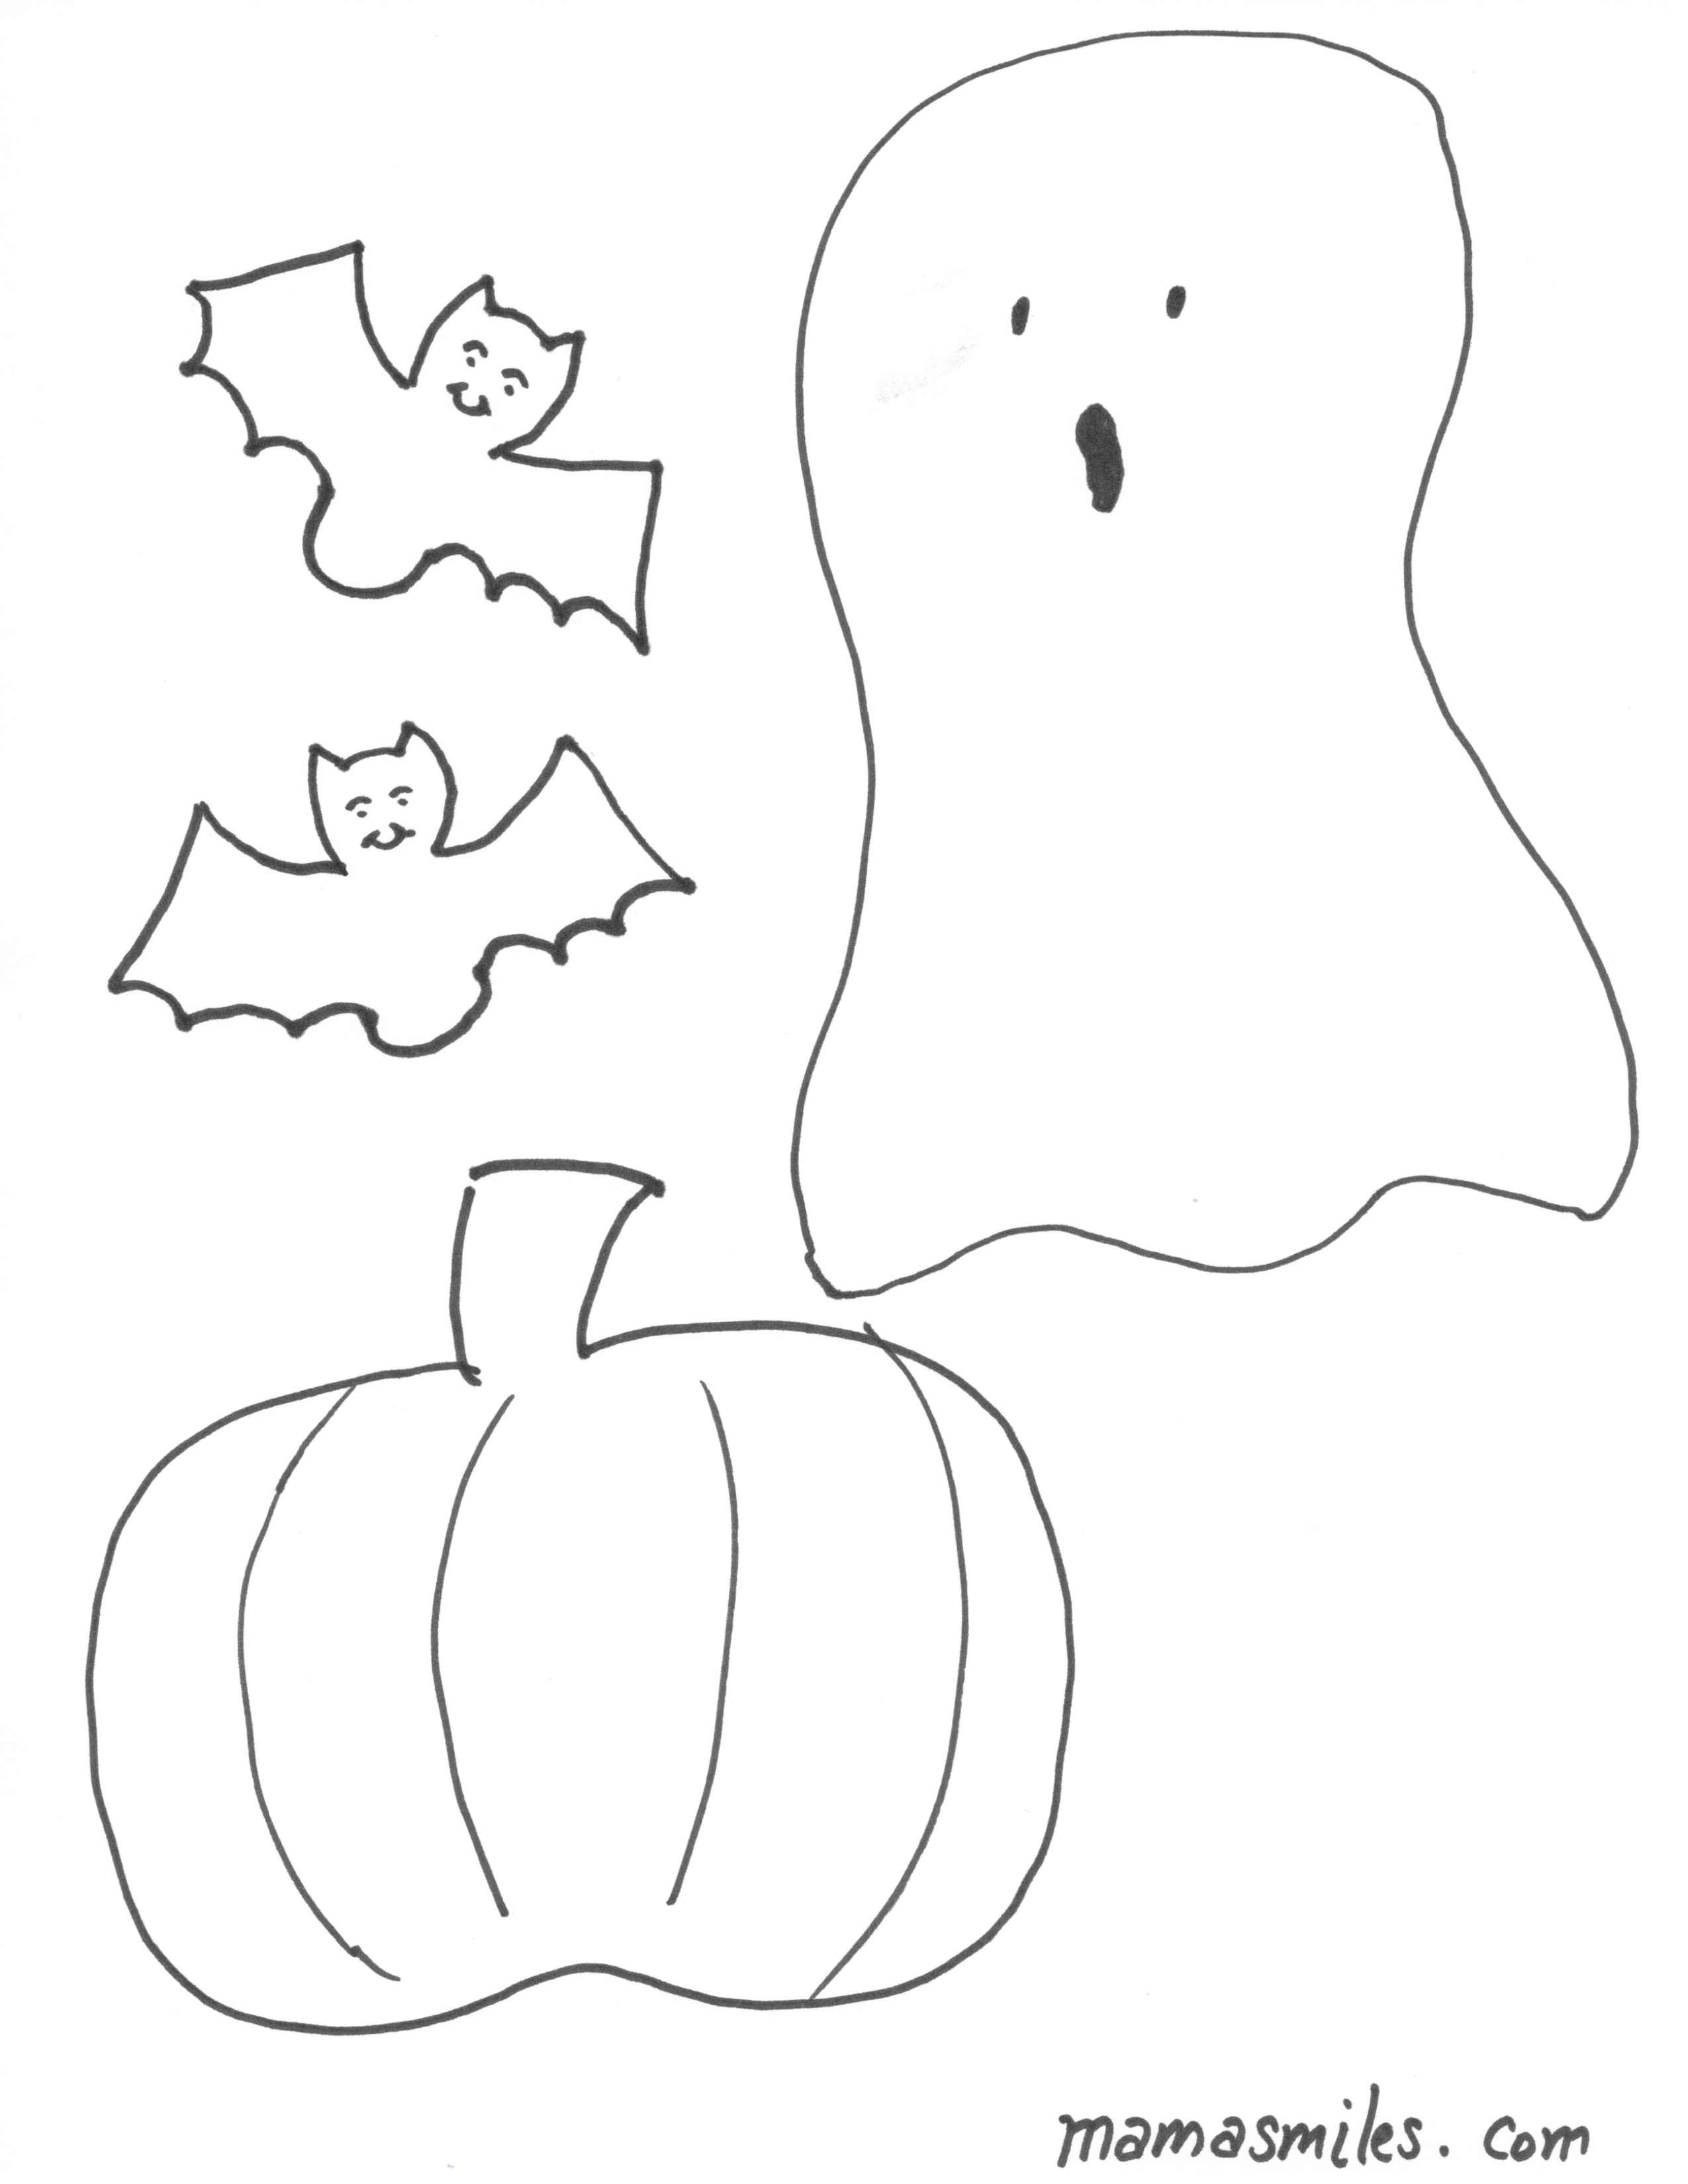 halloween coloring pages easy easy halloween coloring pages festival collections easy pages coloring halloween